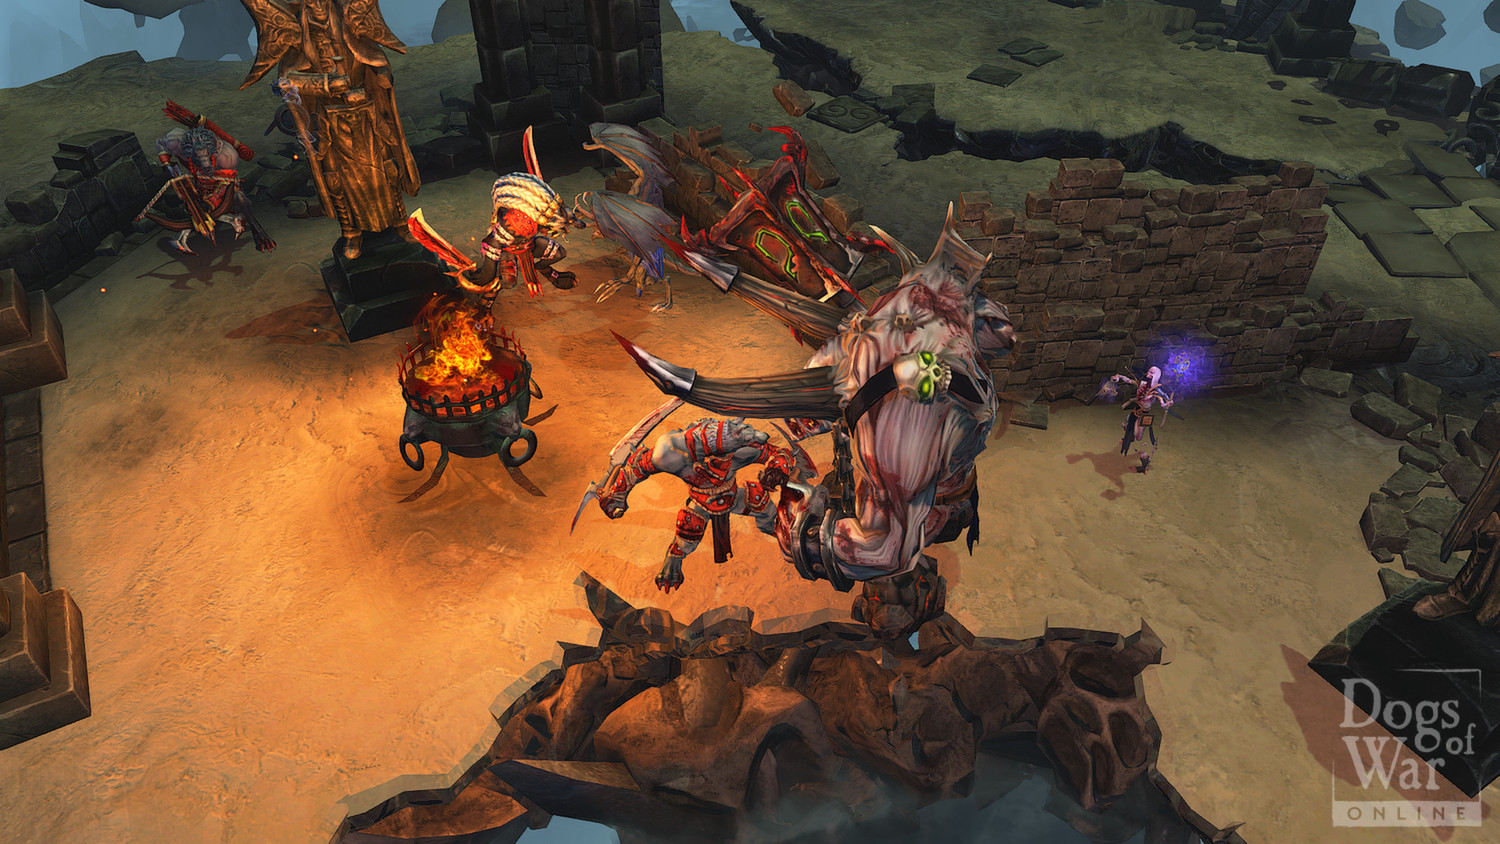 Dogs of War Online Gameplay Screenshot 1